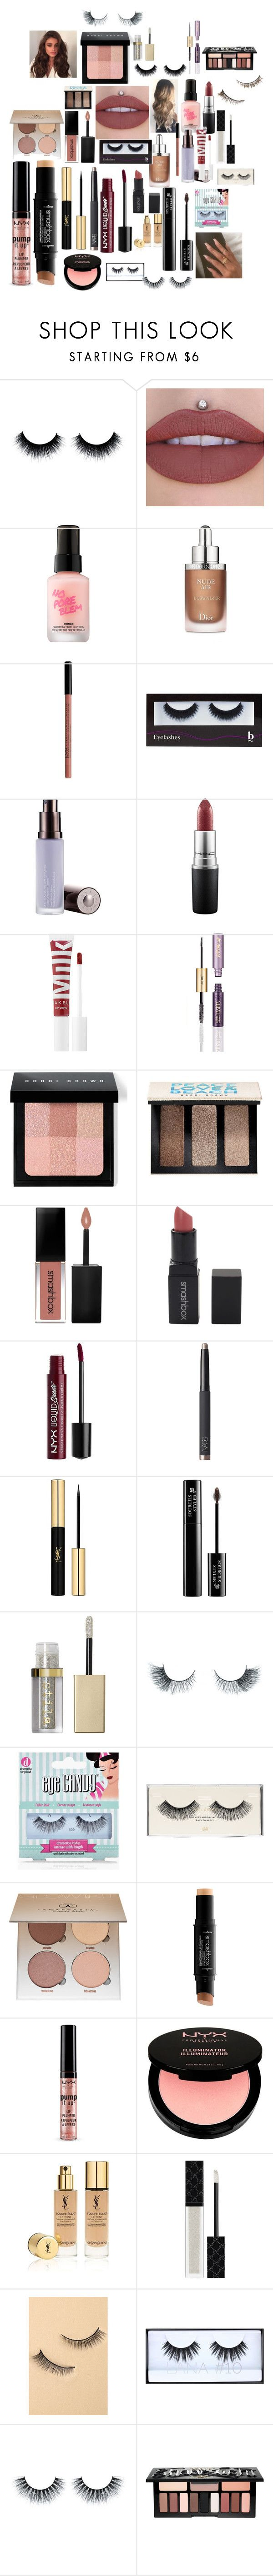 """""""Untitled #2058"""" by bucketlistdiary on Polyvore featuring beauty, Touch in Sol, Christian Dior, NYX, BBrowBar, Becca, MAC Cosmetics, MILK MAKEUP, Bobbi Brown Cosmetics and Smashbox"""